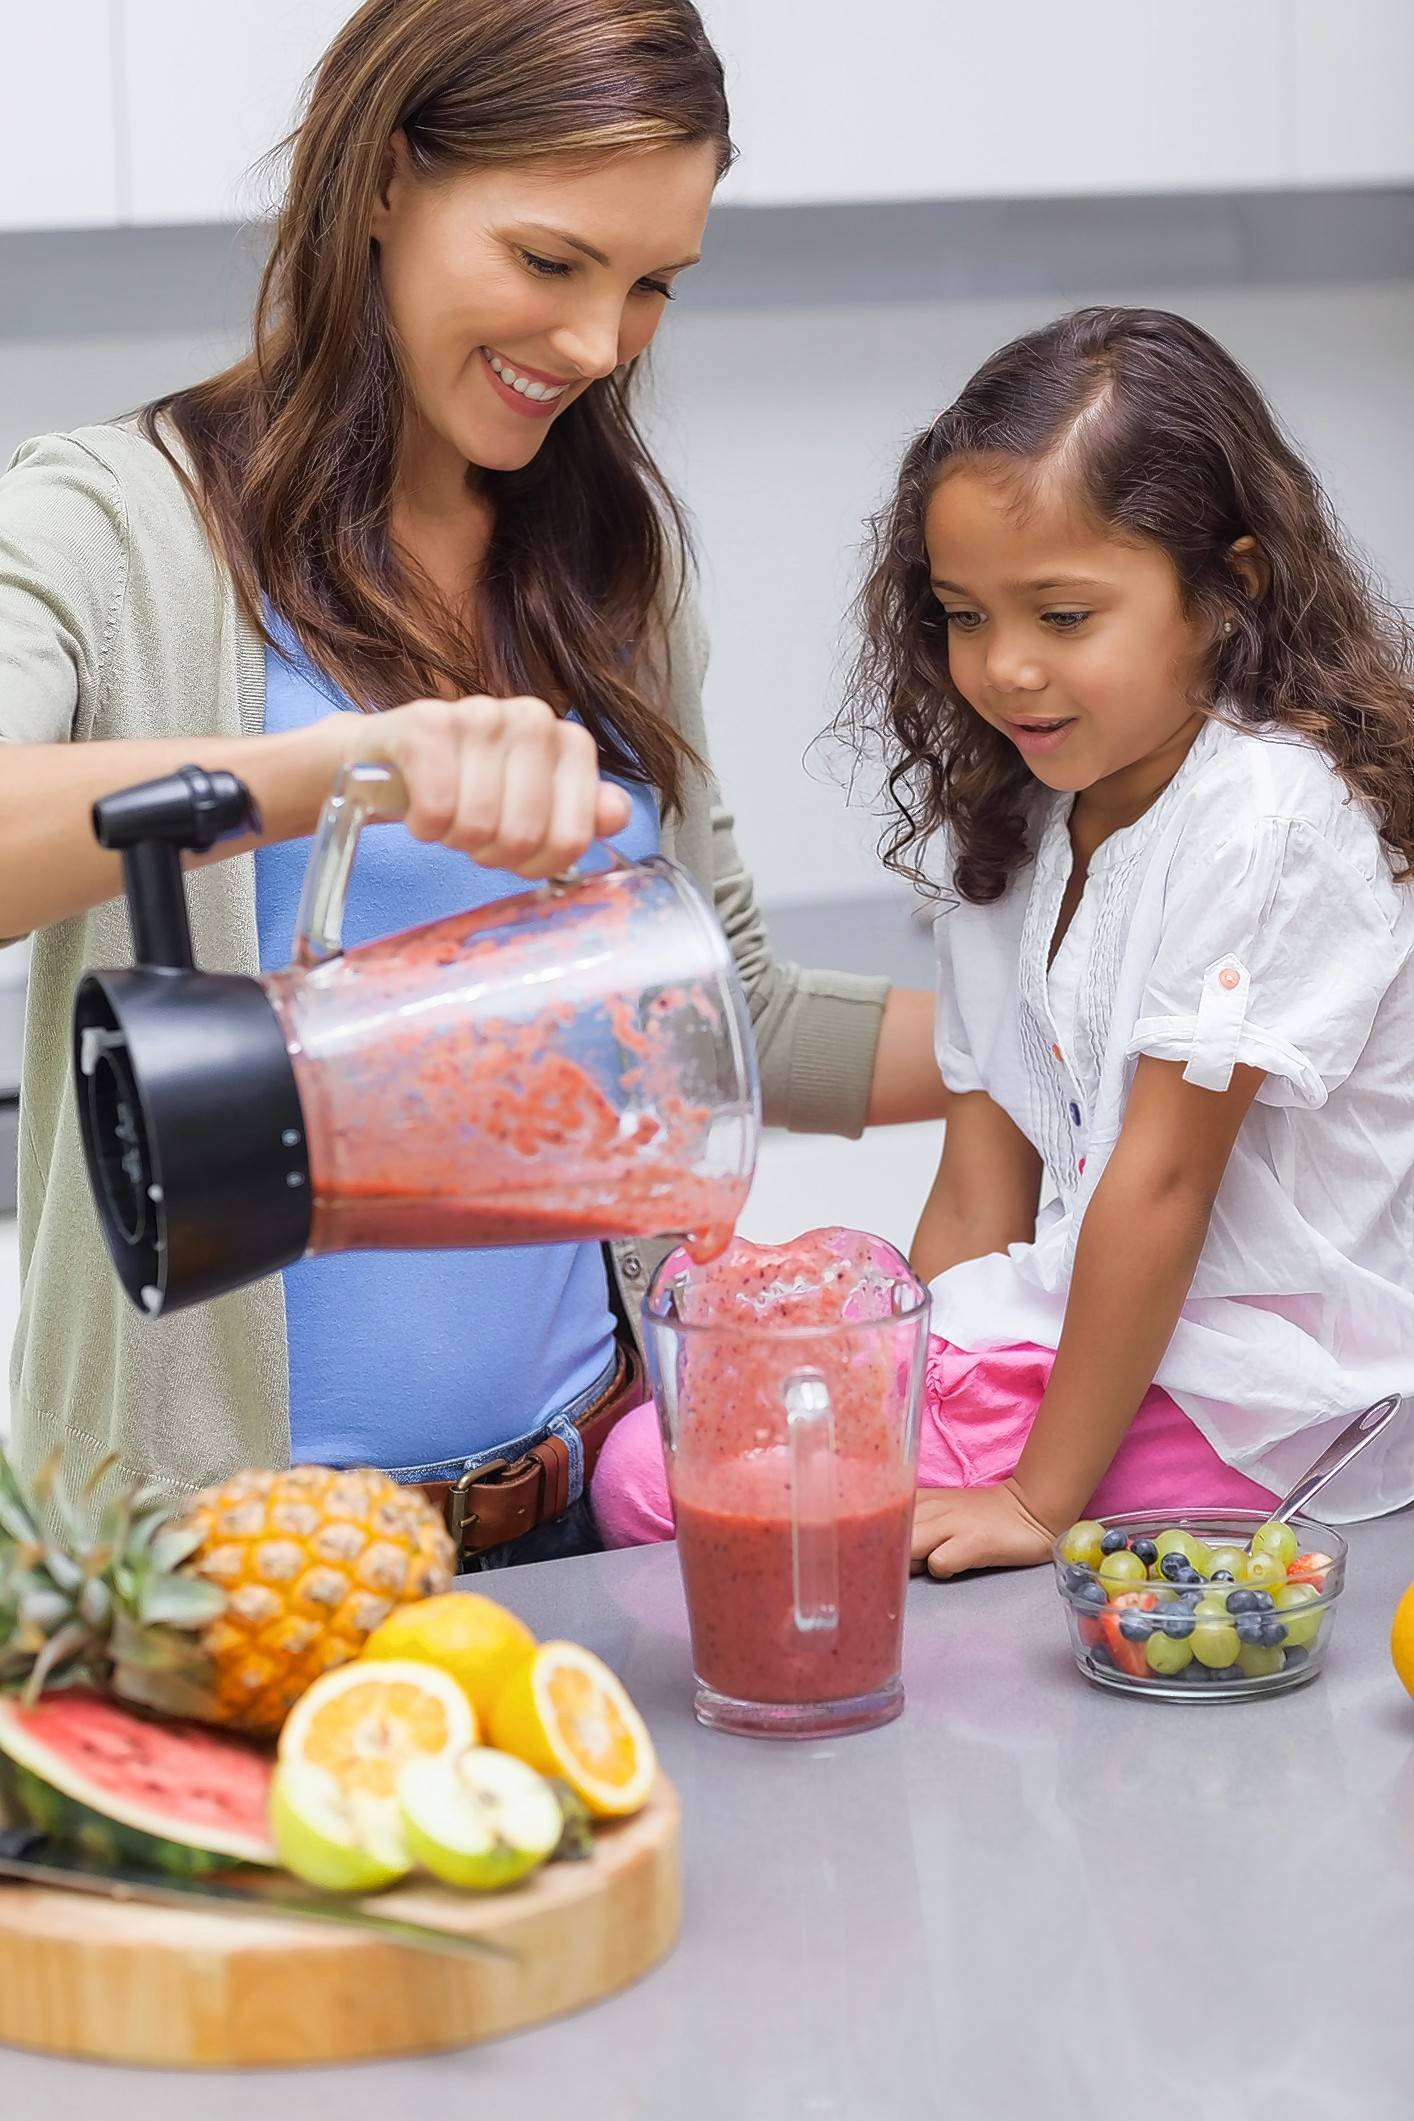 Your health: Here are some tips for healthy snacks for kids